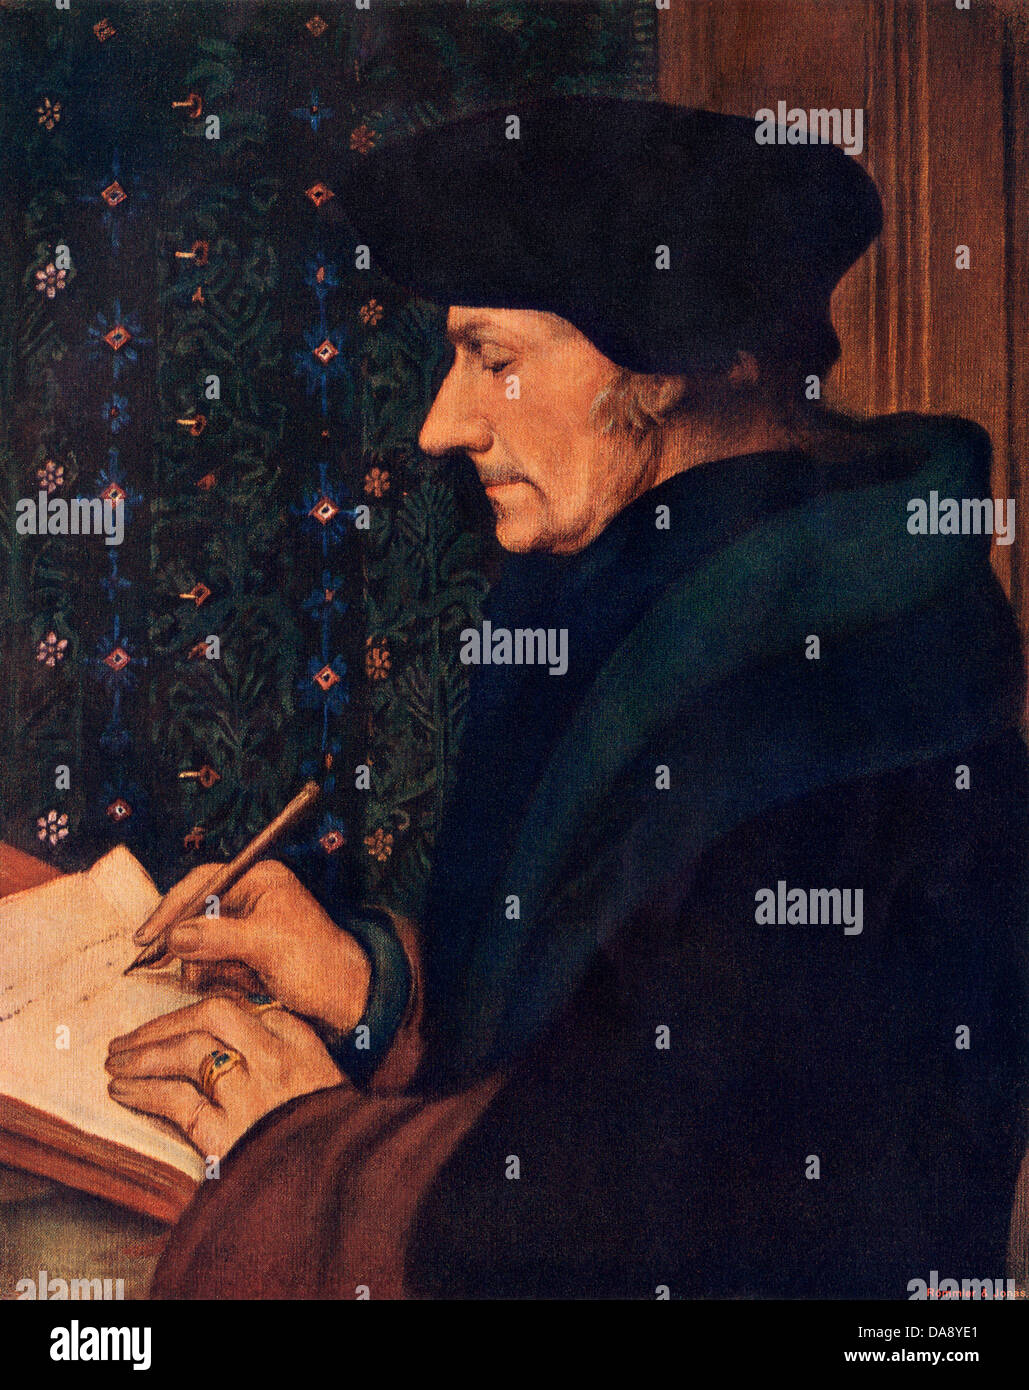 Desiderius Erasmus. Color halftone reproduction of the portrait by Holbein - Stock Image